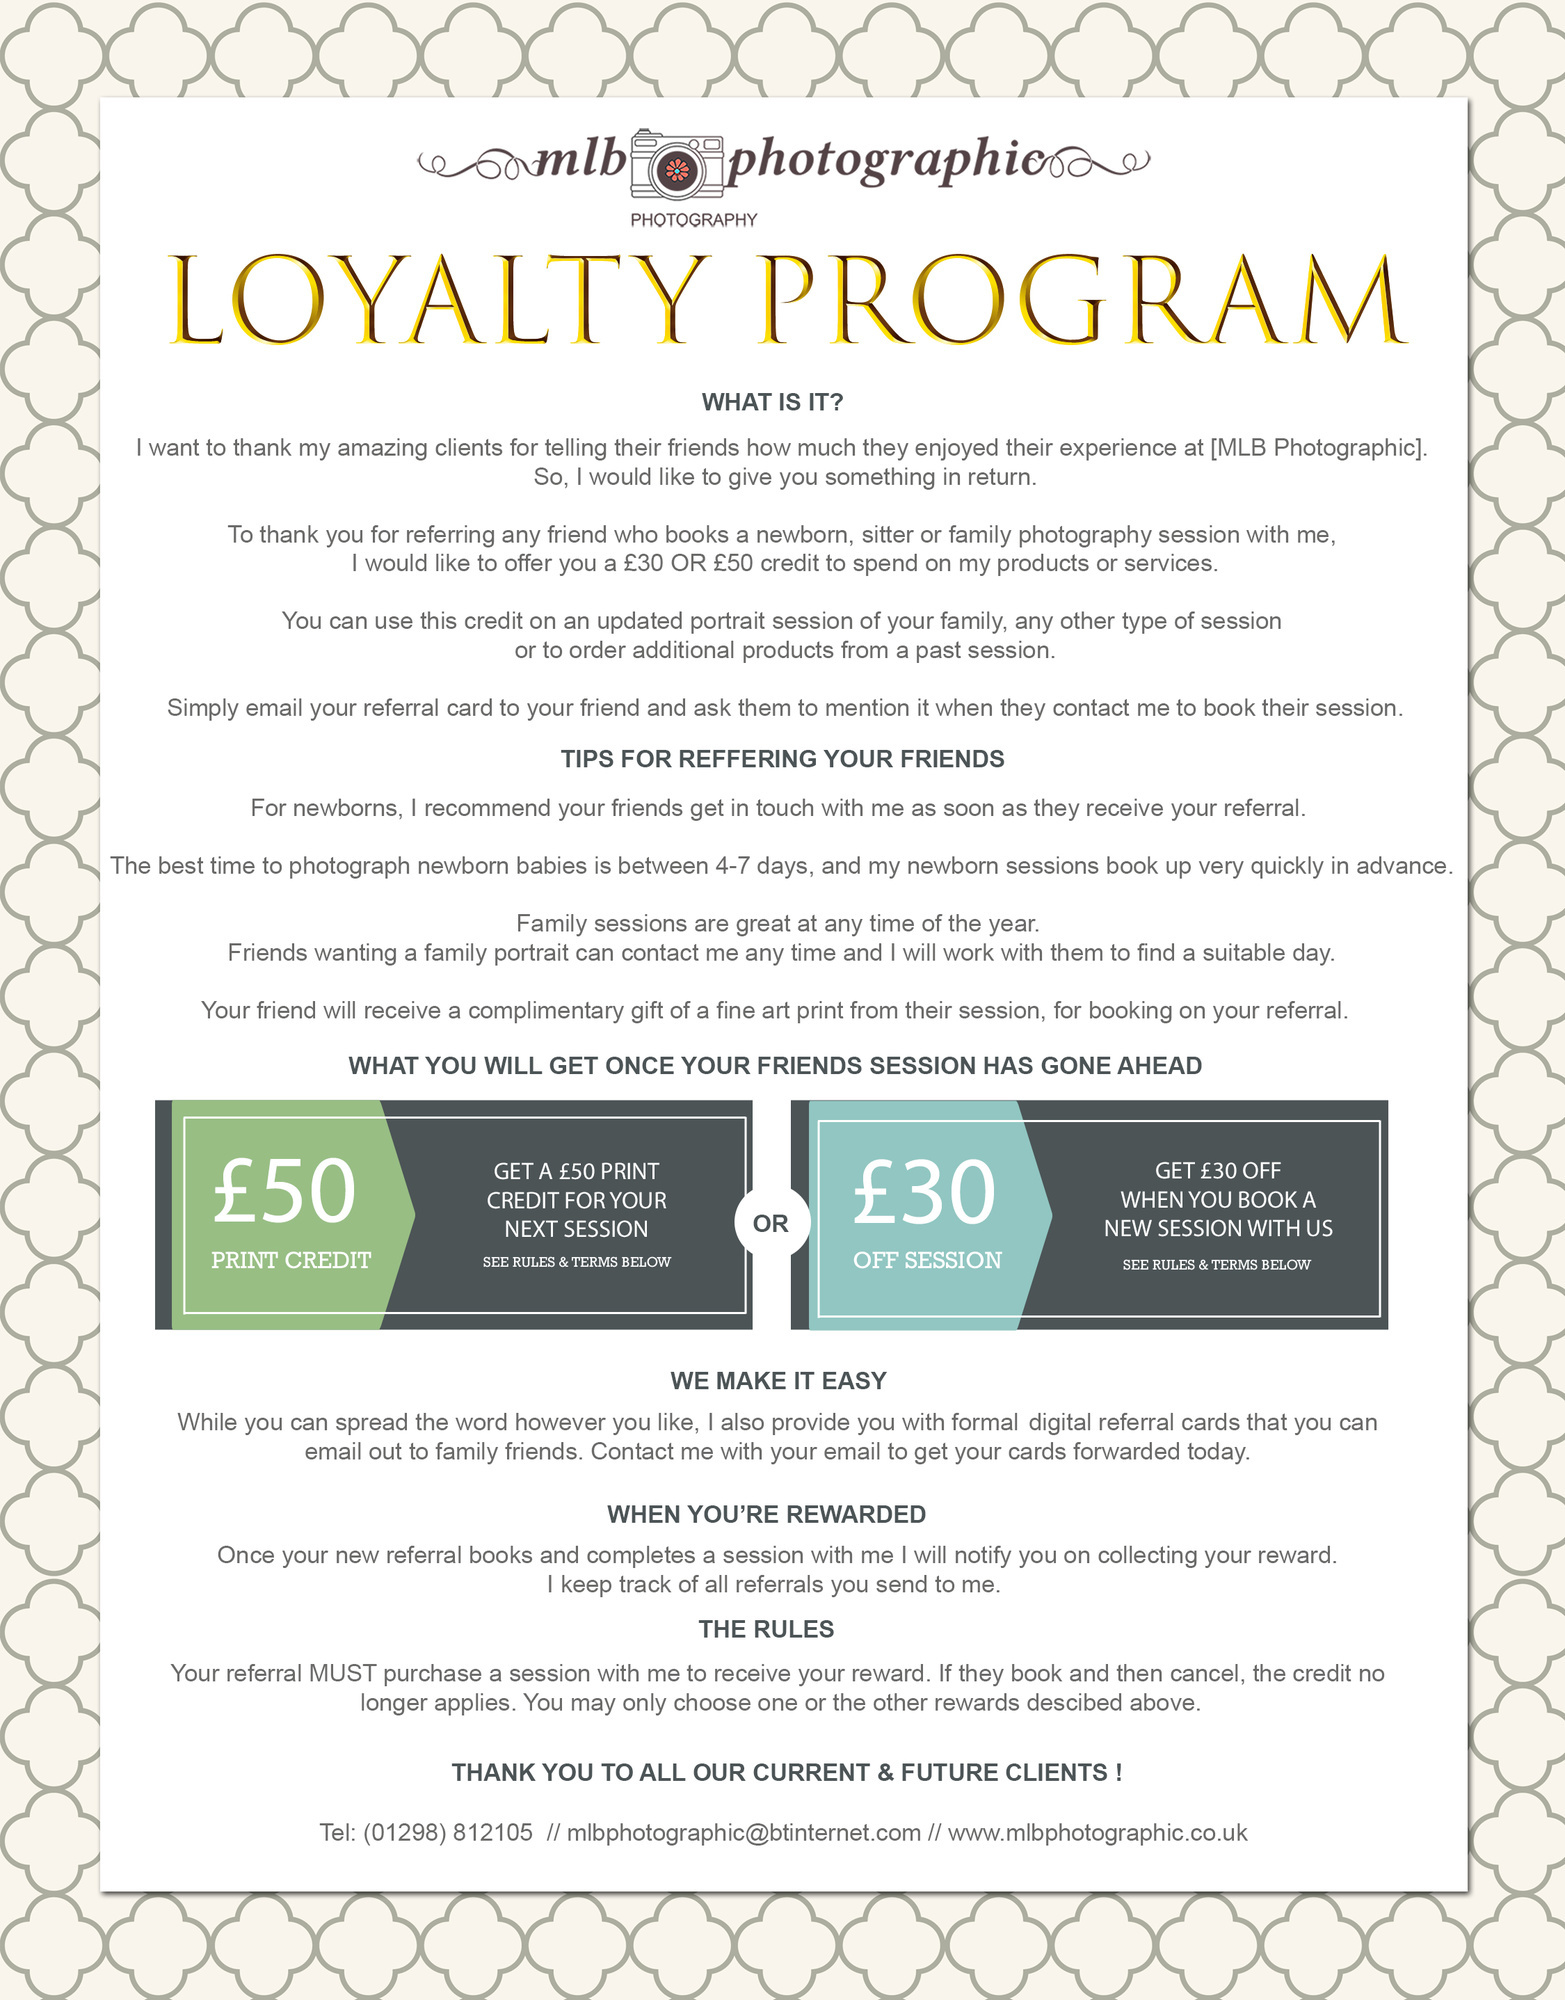 MLB LOYALTY PROGRAM